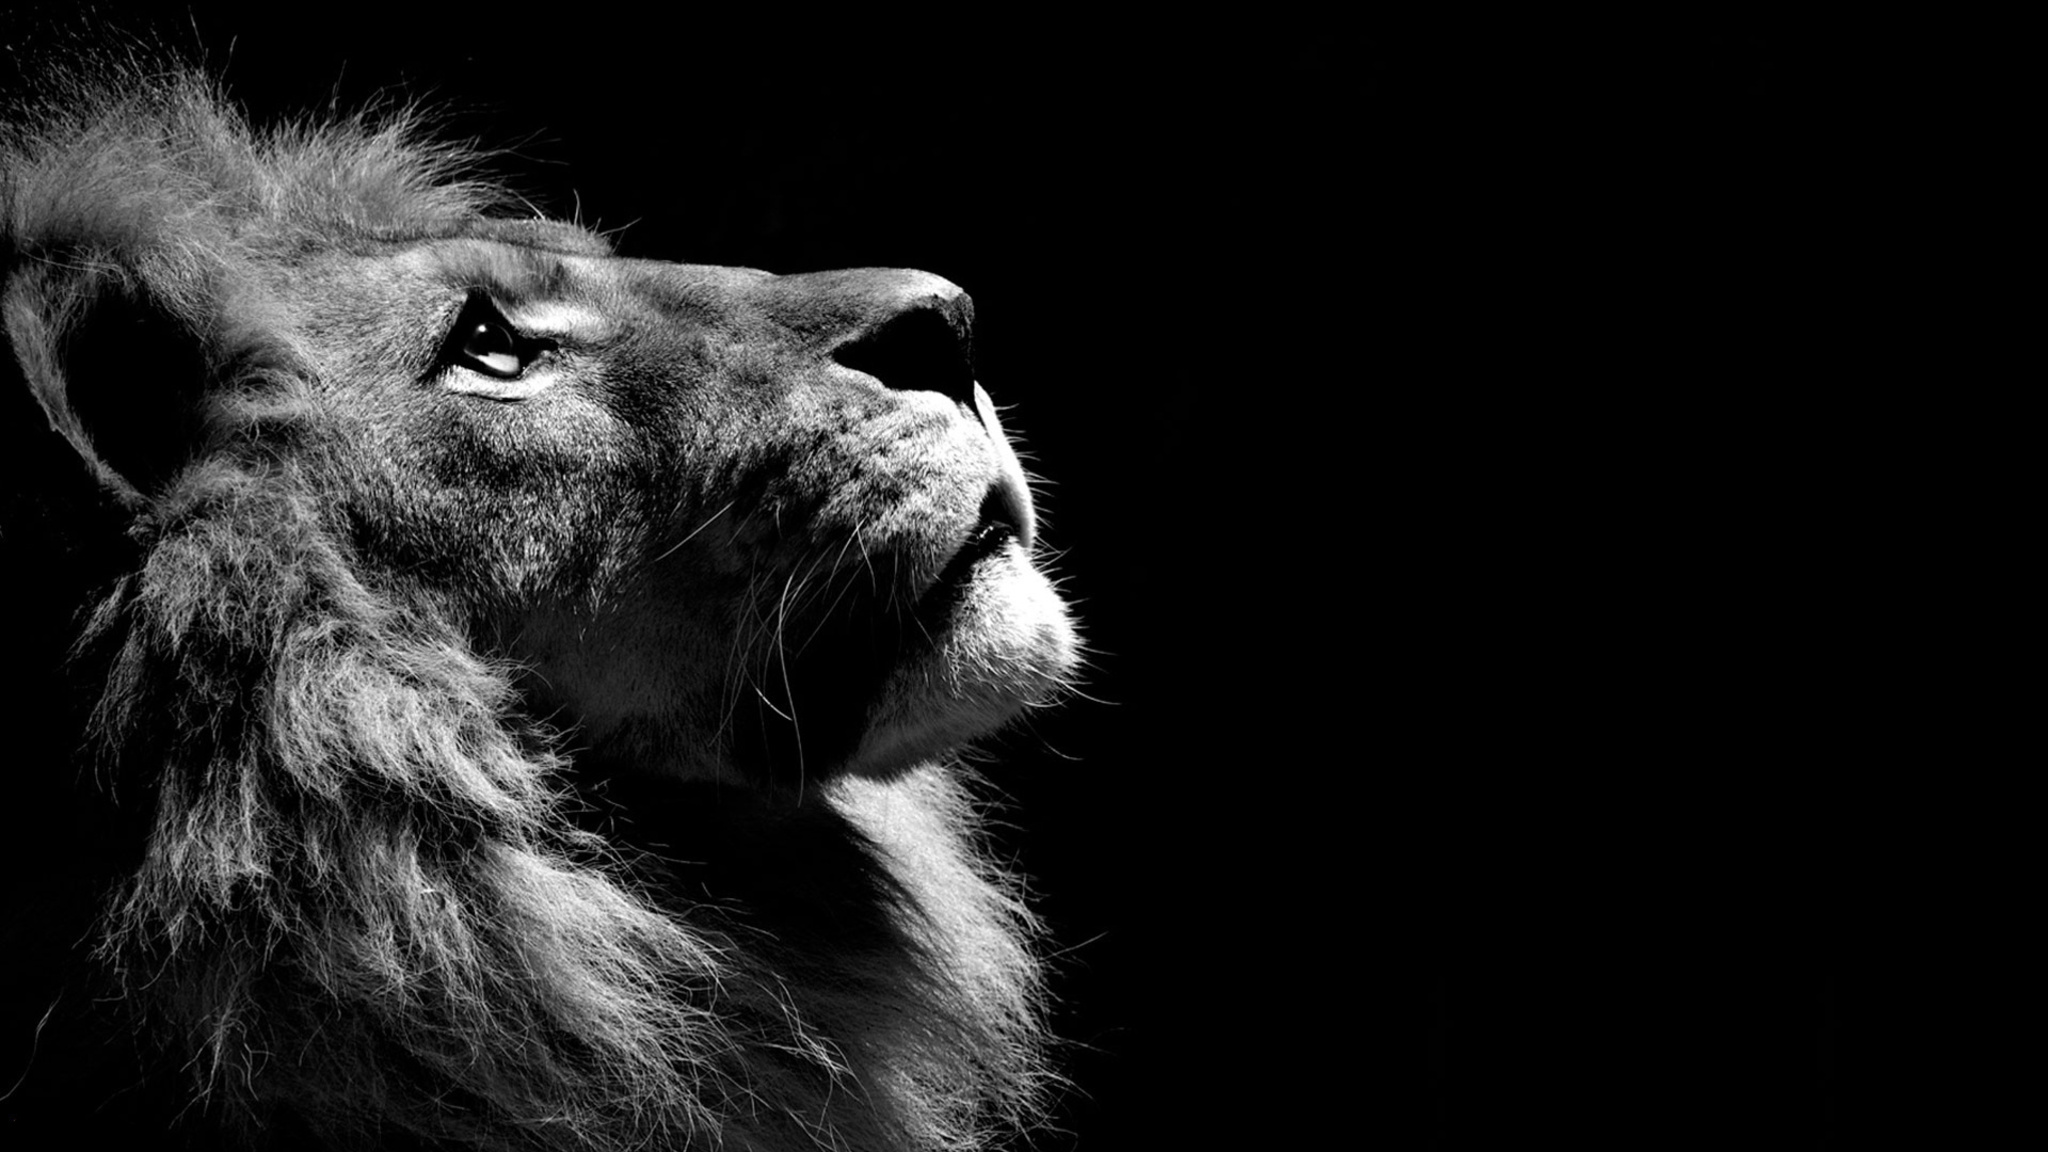 2048x1152 Lion Black And White 2048x1152 Resolution Hd 4k